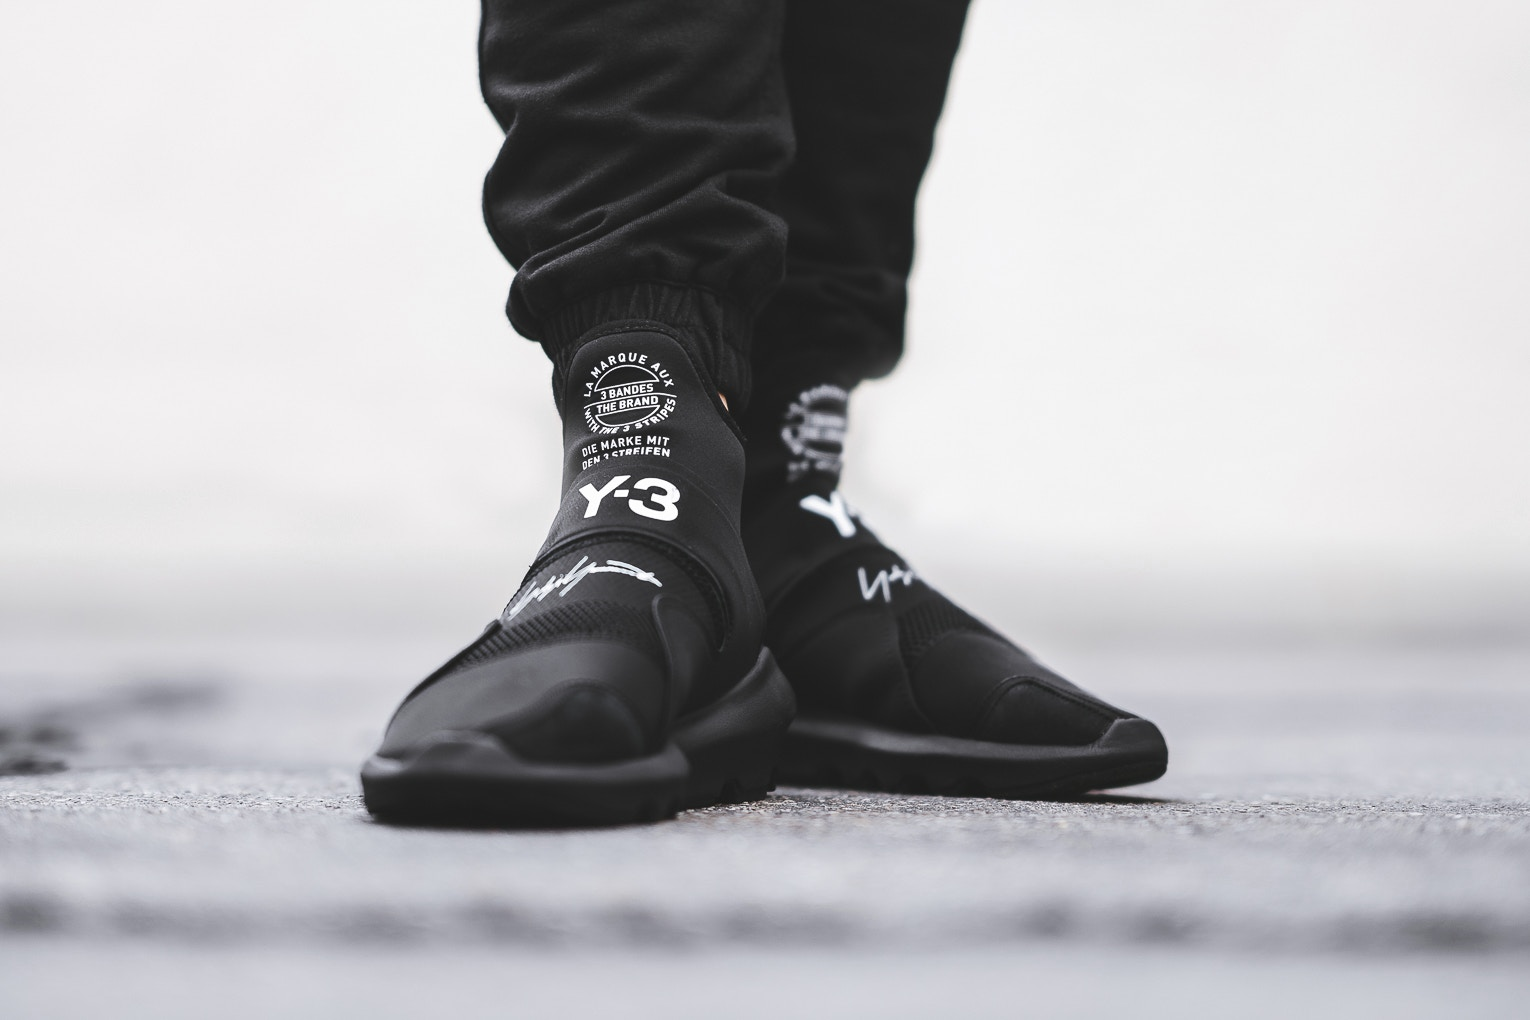 The adidas Y-3 Suberou Dropped Today